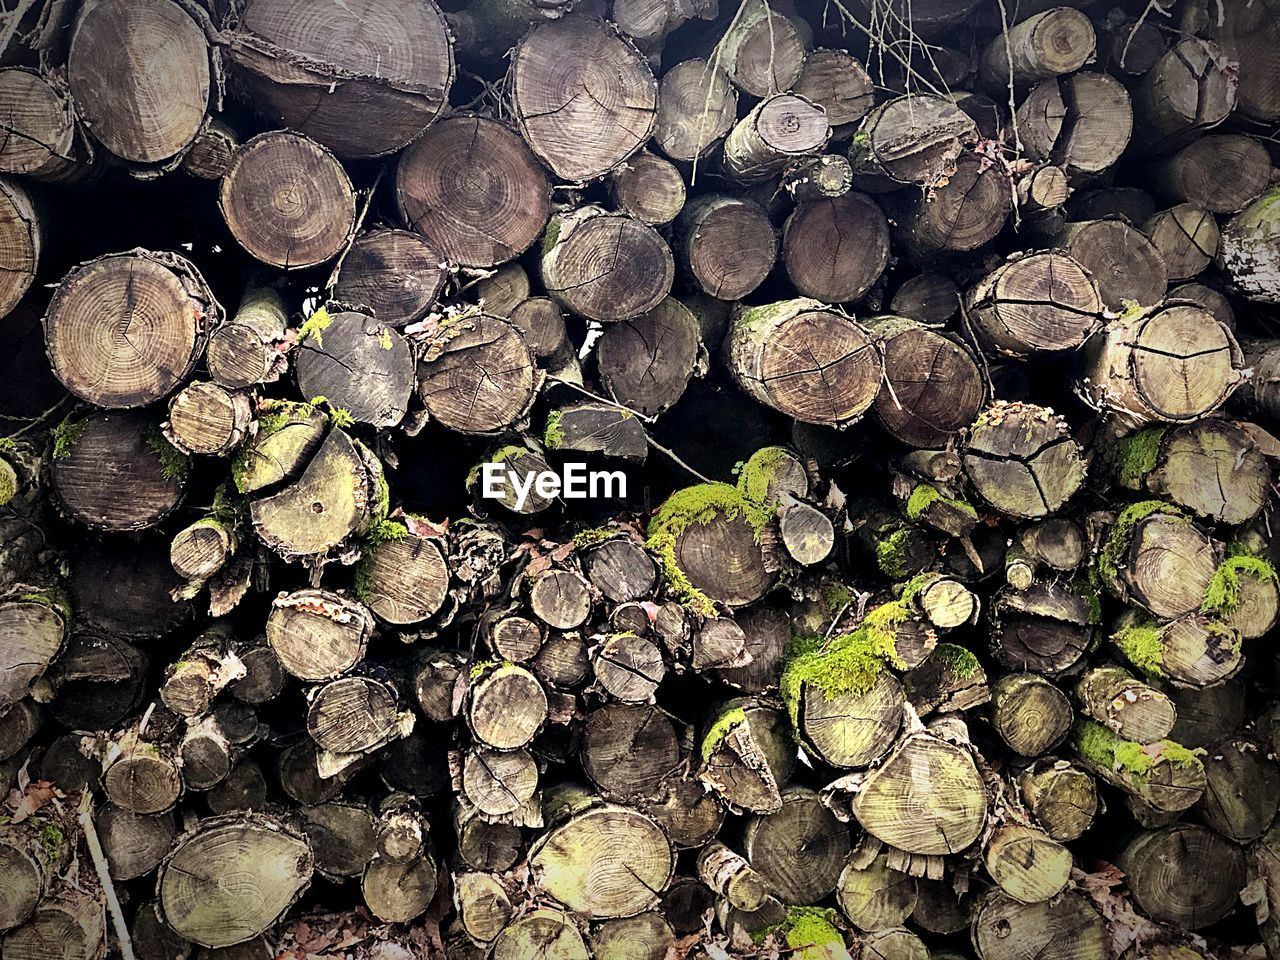 timber, stack, wood, firewood, log, full frame, forest, deforestation, tree, lumber industry, backgrounds, wood - material, large group of objects, abundance, fuel and power generation, fossil fuel, nature, heap, no people, environmental issues, woodpile, outdoors, chopped, tree ring